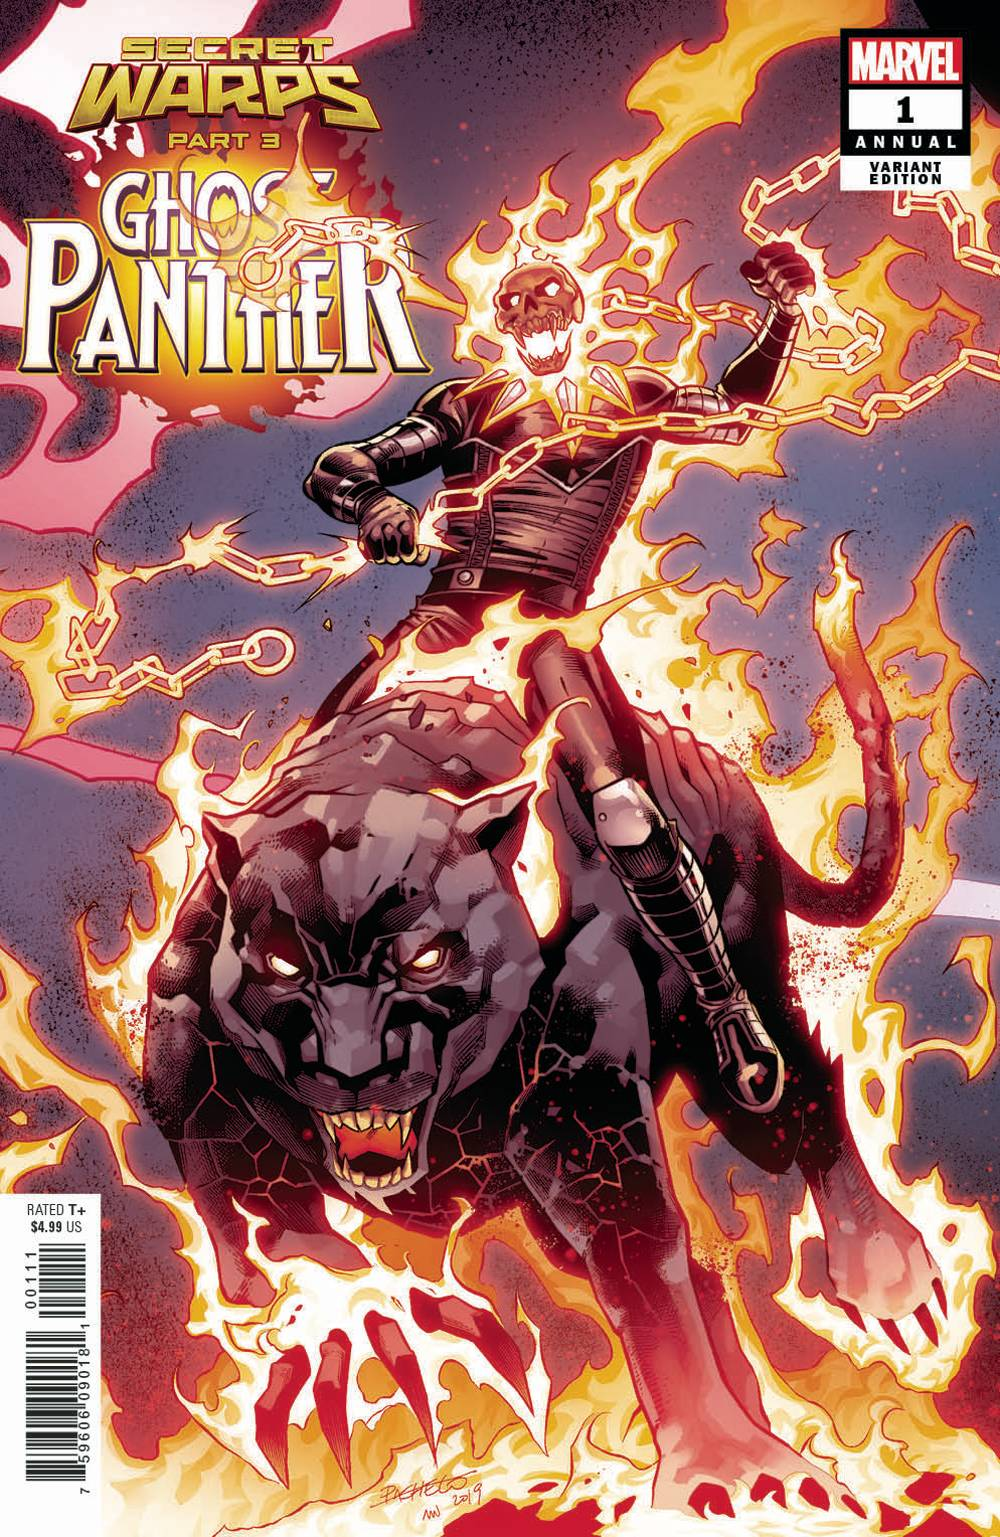 SECRET WARPS GHOST PANTHER ANNUAL #1 PACHECO CONNECTING VAR